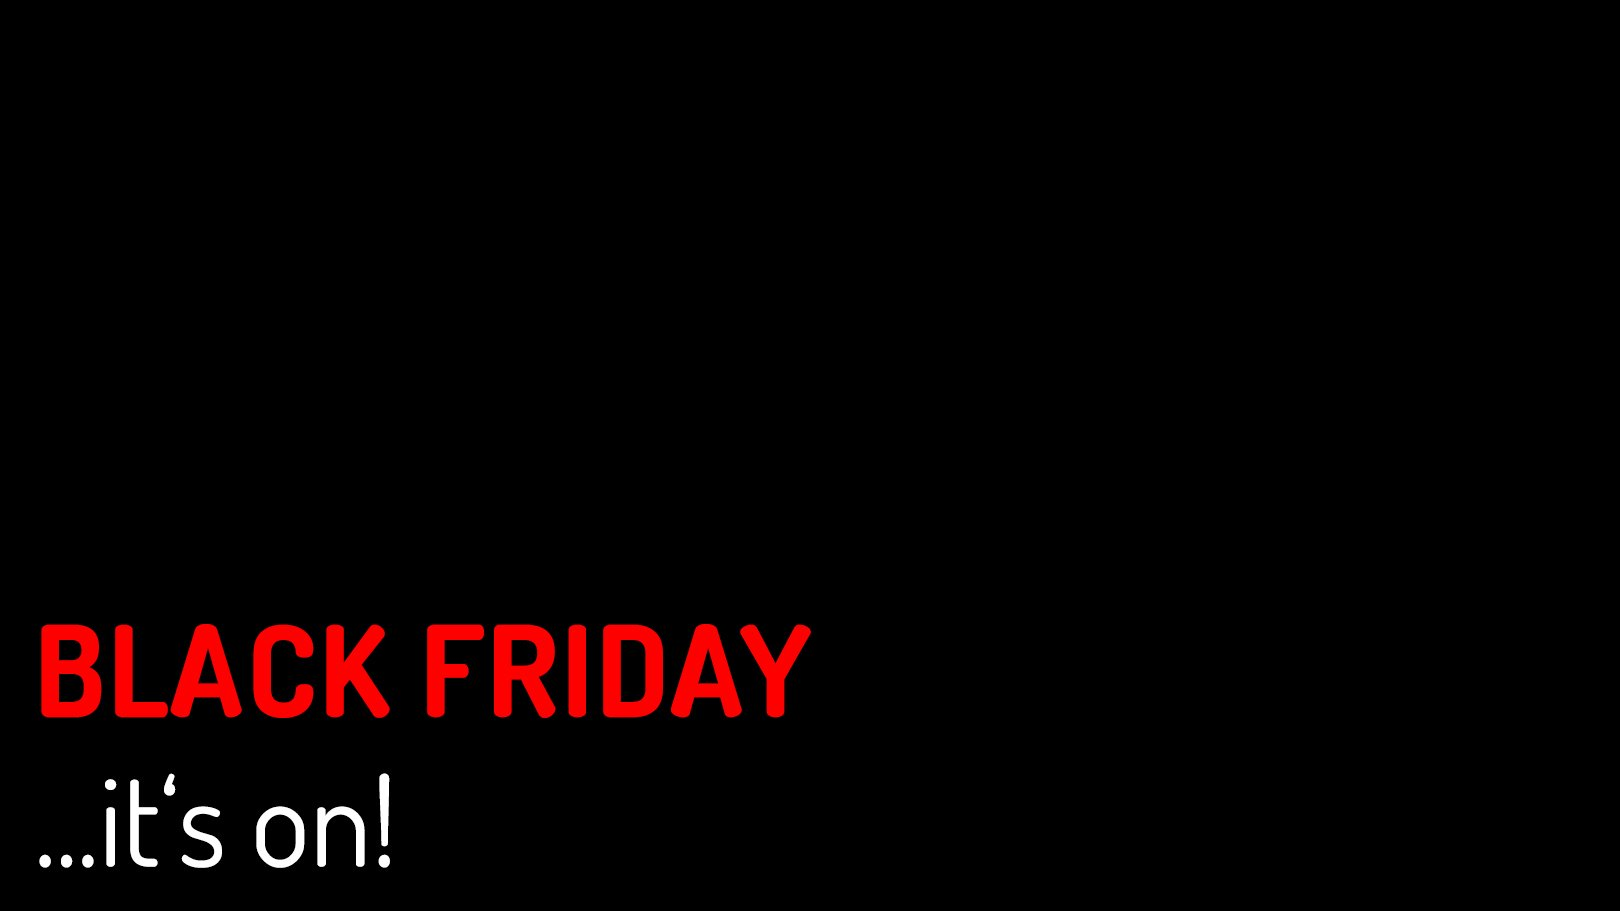 Black Friday Angebot Black Friday Black Friday Everywhere Digital Production